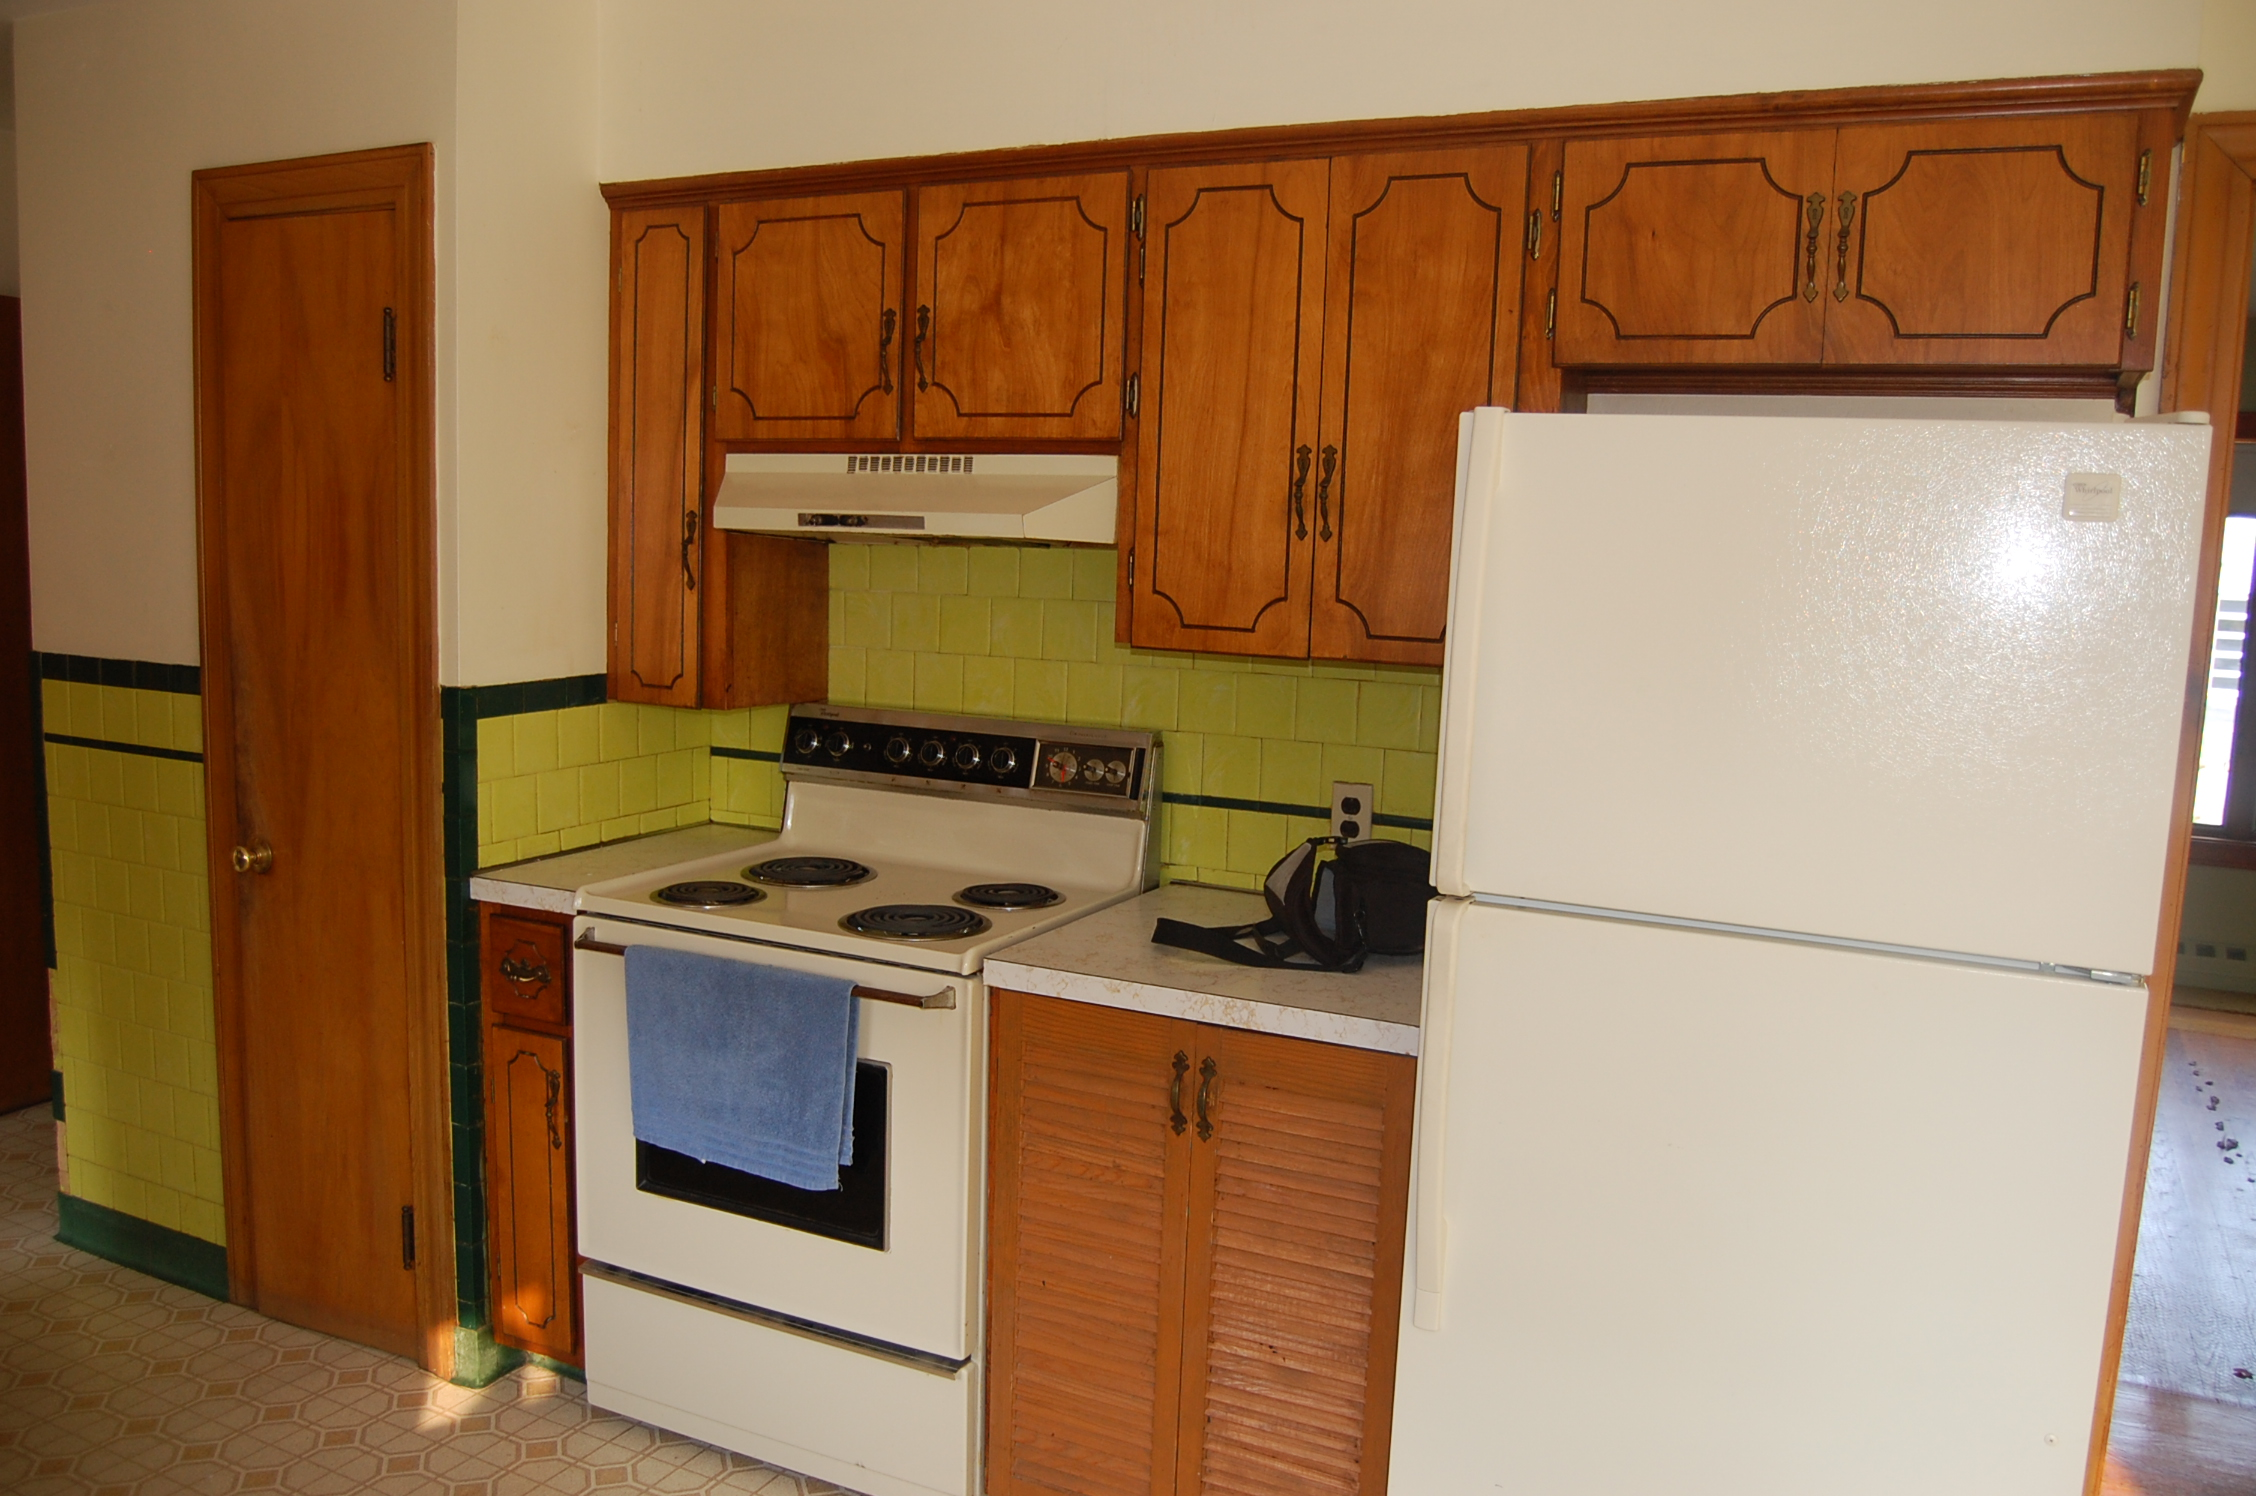 diy kitchen cabinet refacing cabinets buffalo ny home design living room reface